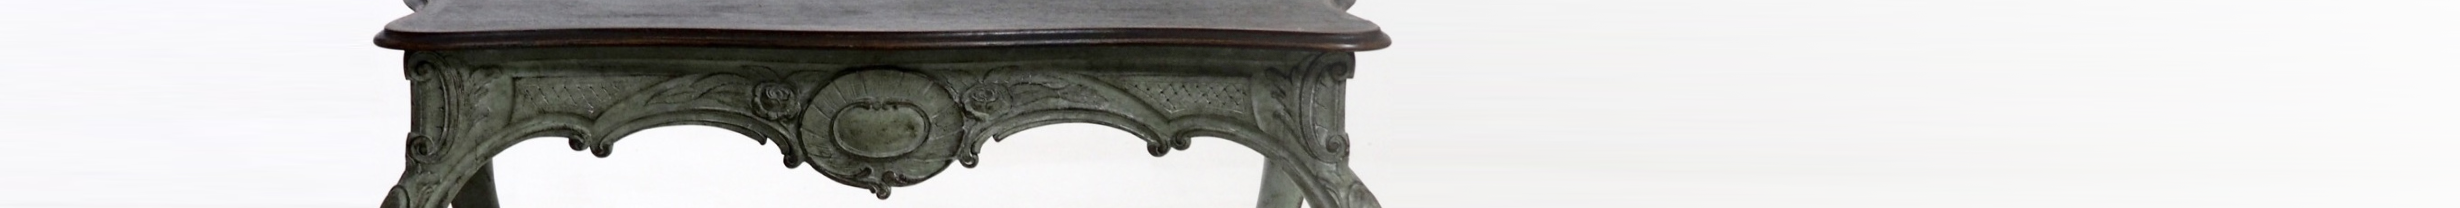 Gustavian green table Swedish .png